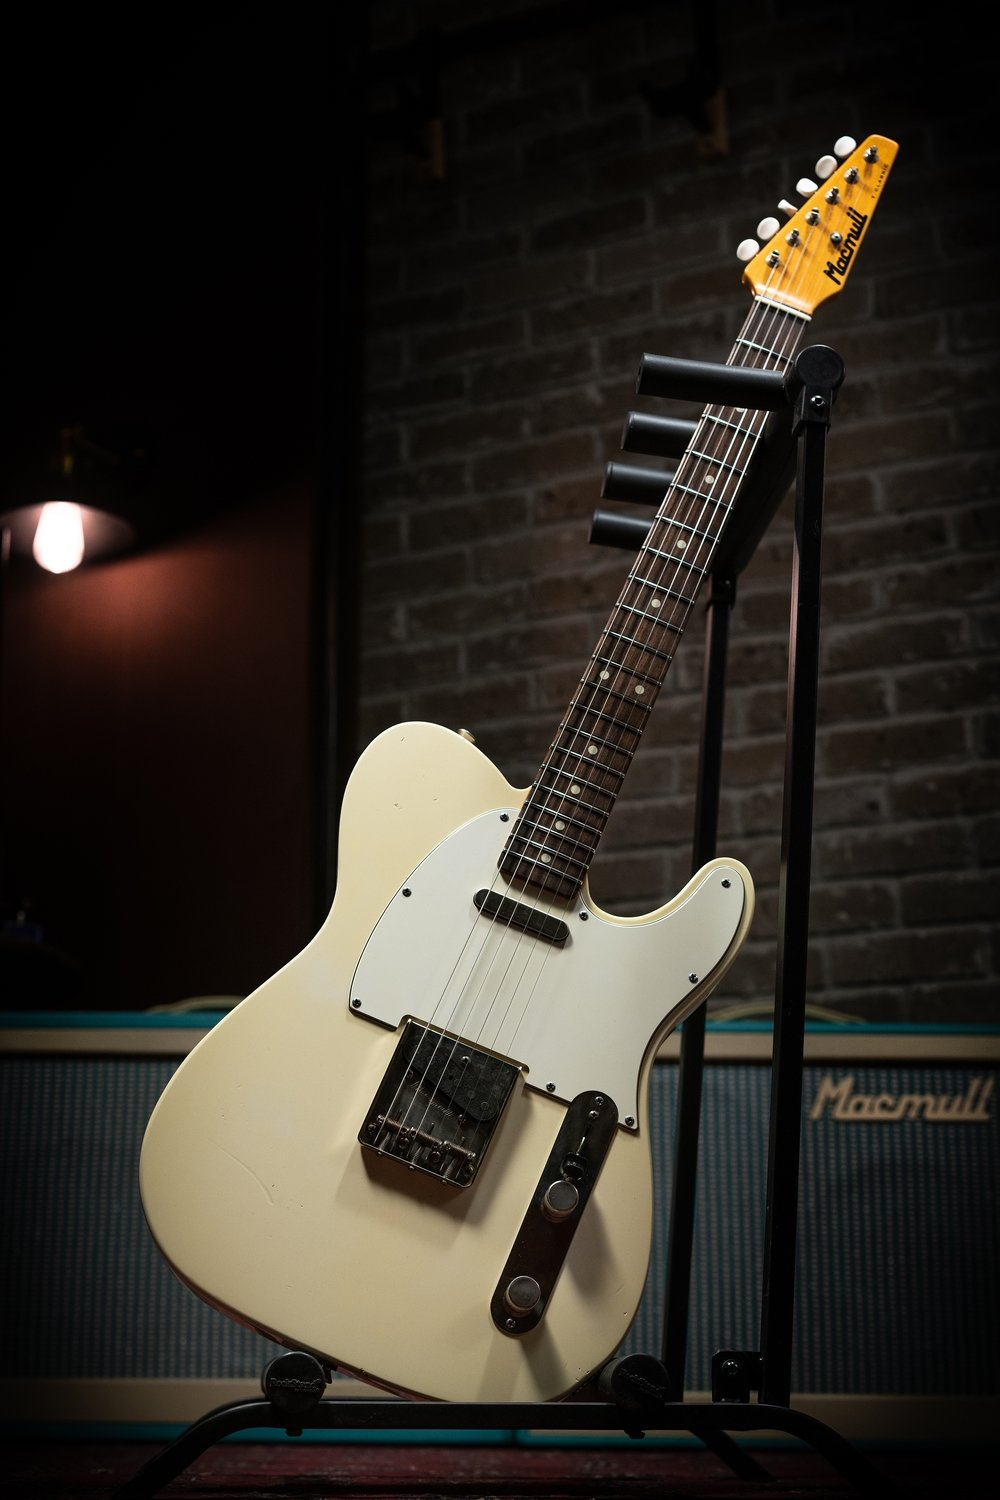 Reserved - Macmull T-Classic, Aged White